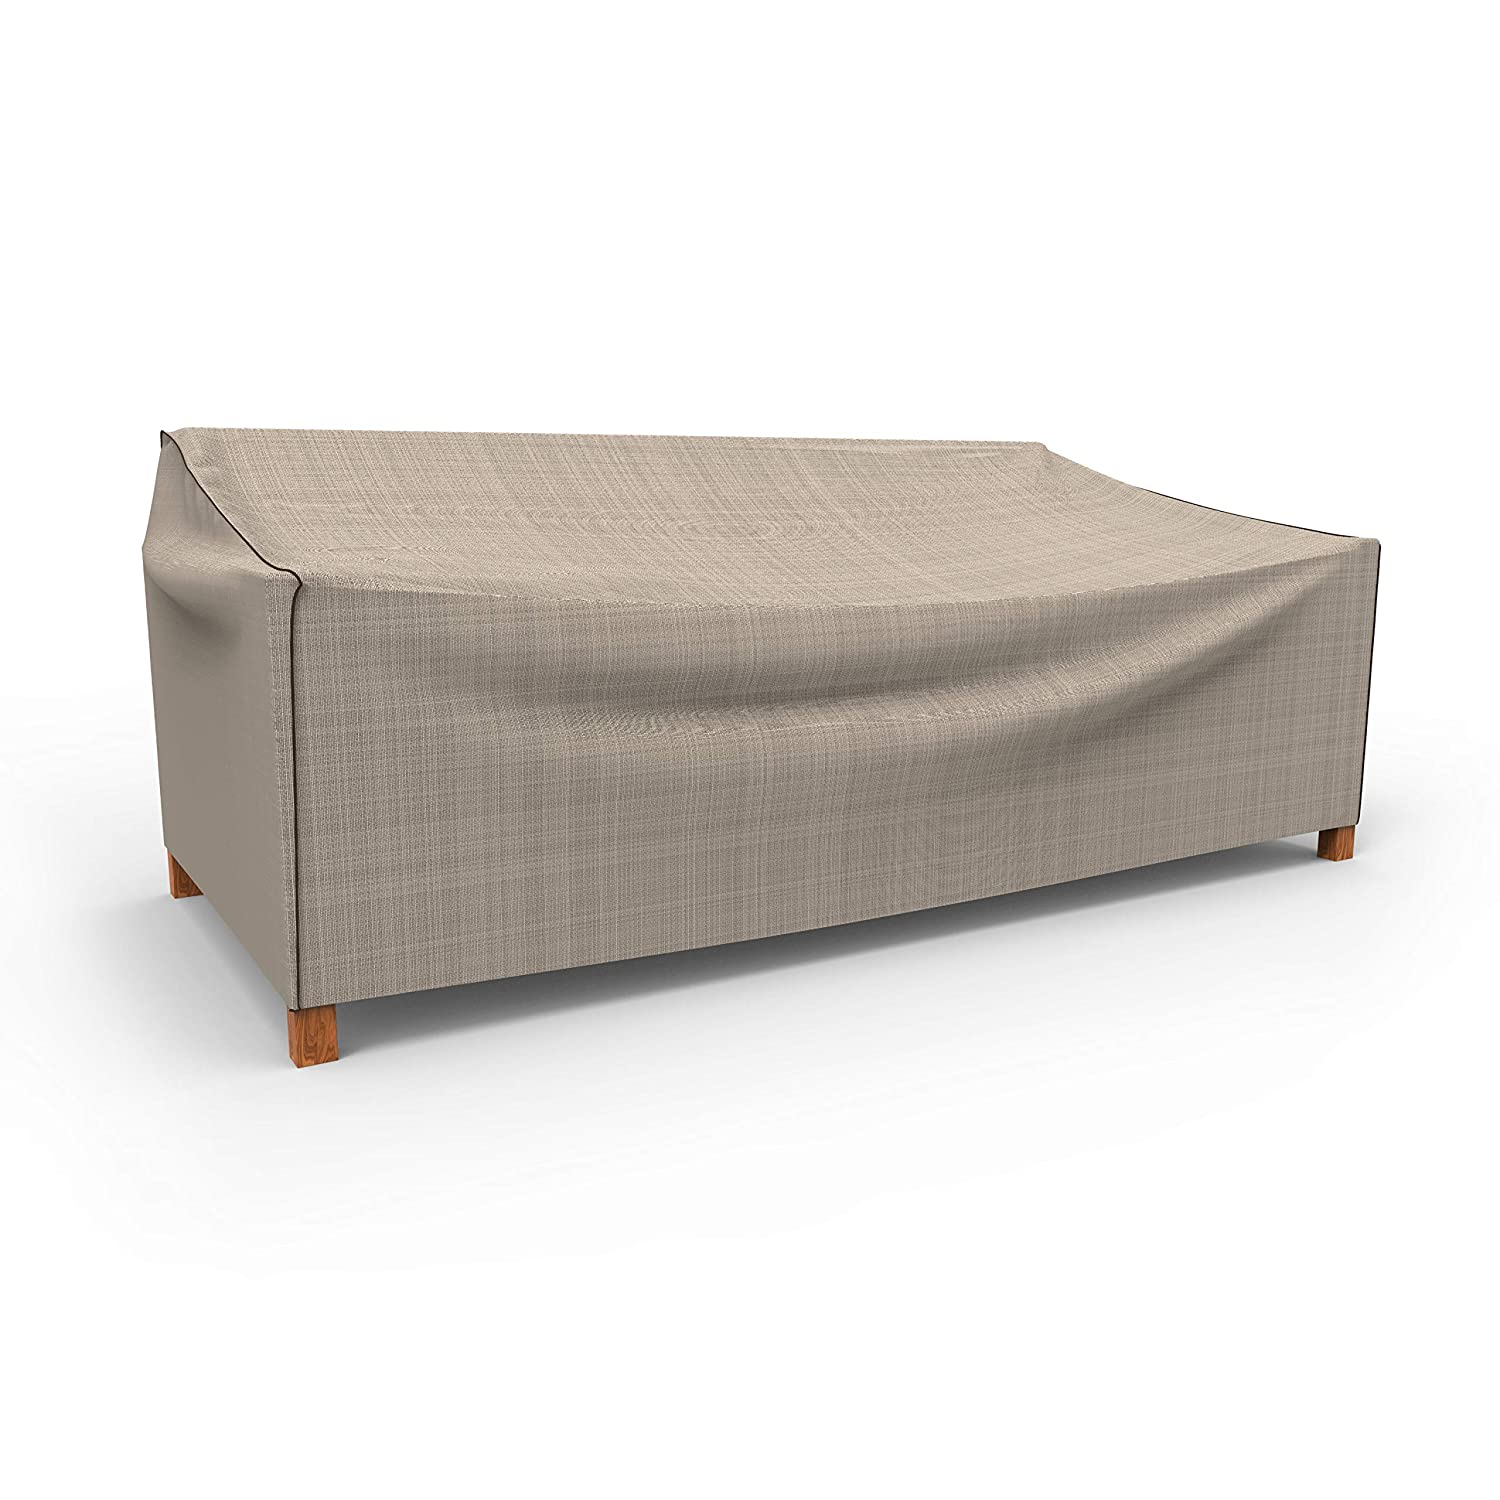 EmpirePatio Tan Tweed Outdoor Patio Sofa Cover, Large